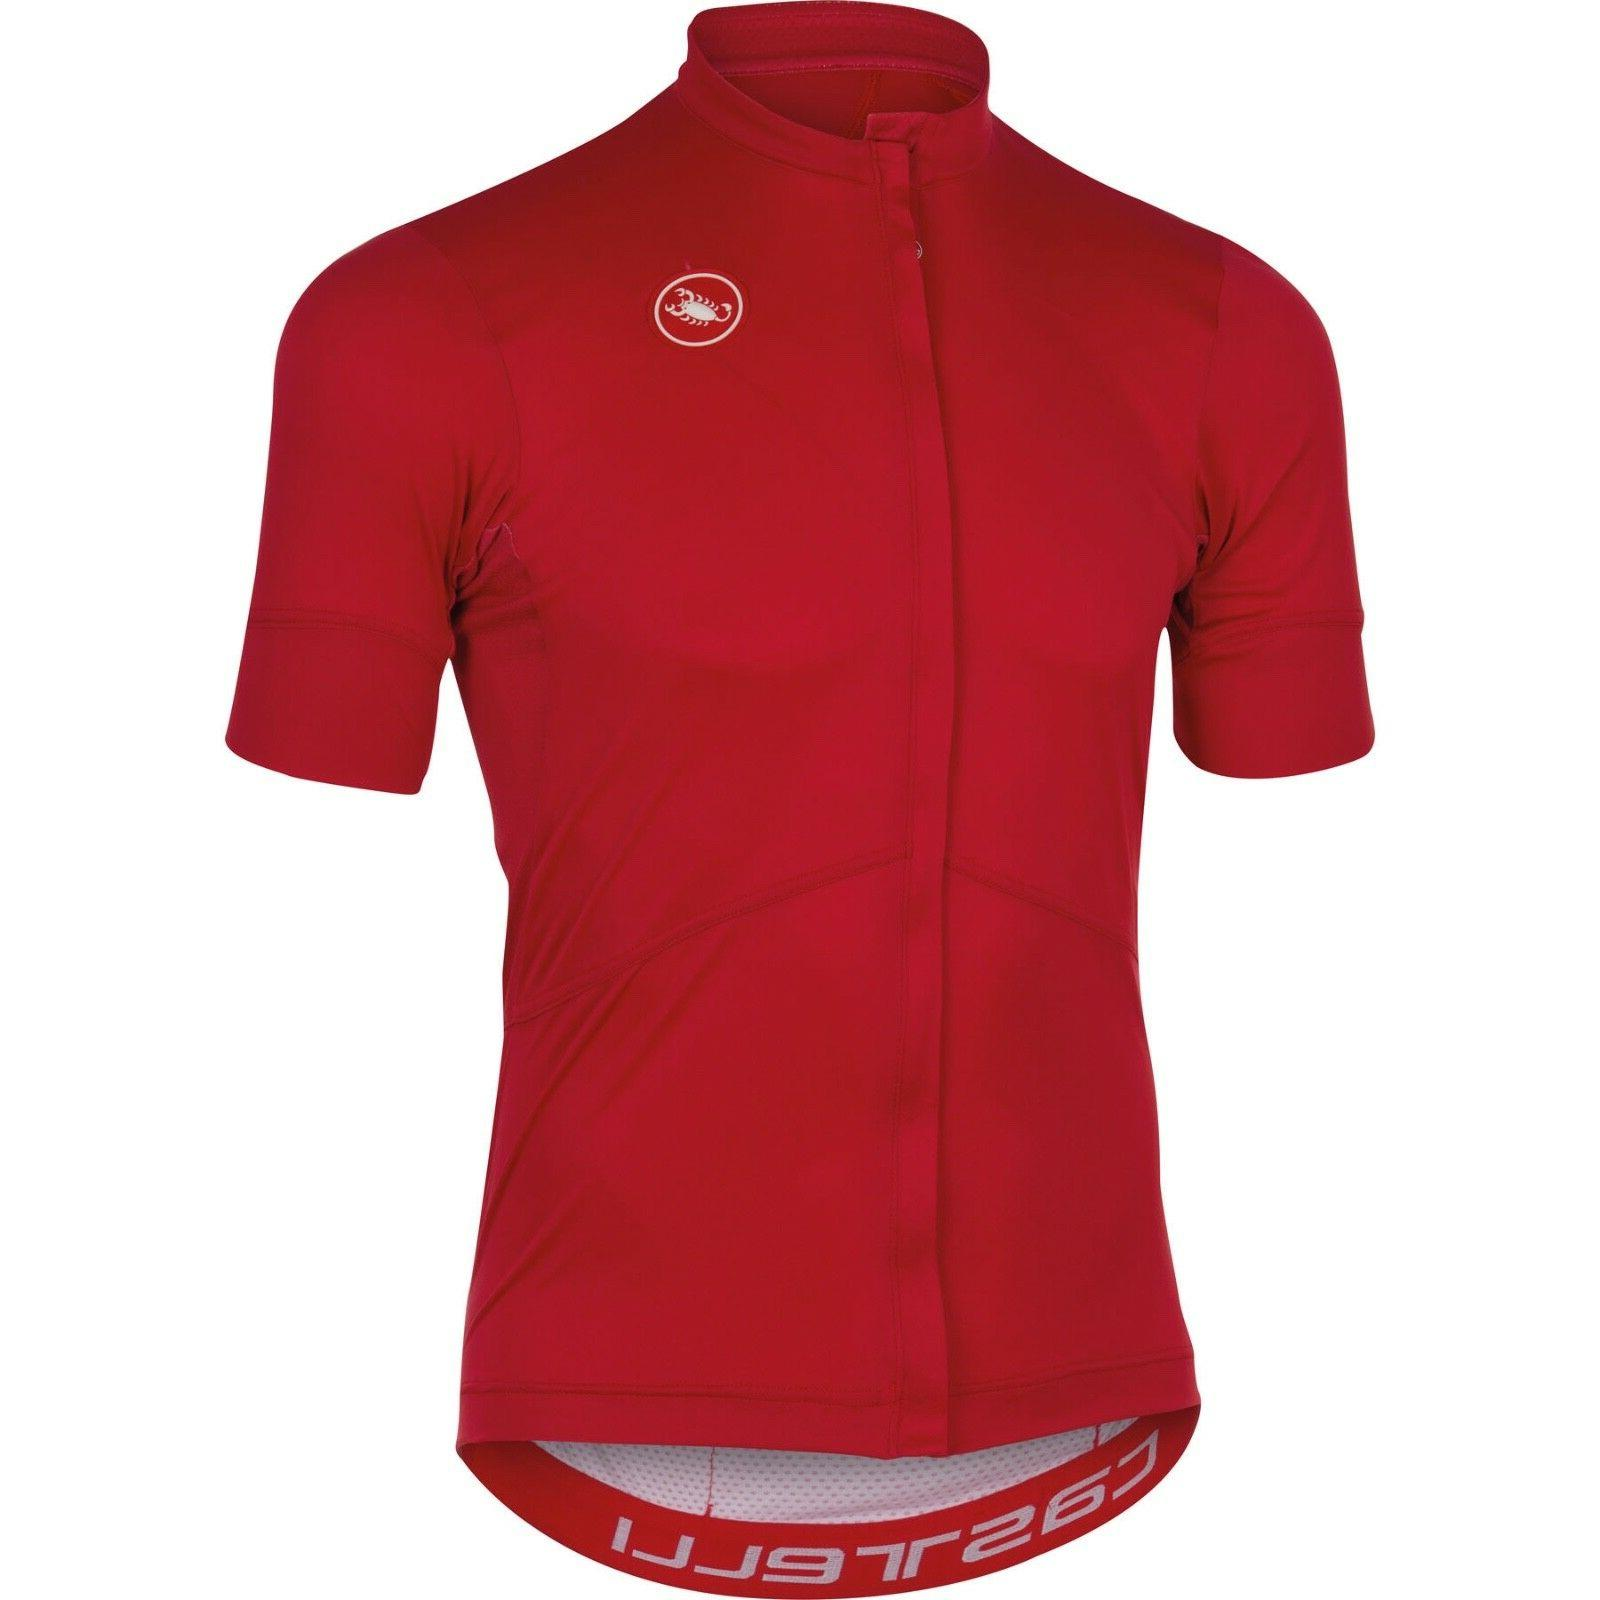 new imprevisto nano road bike men jersey